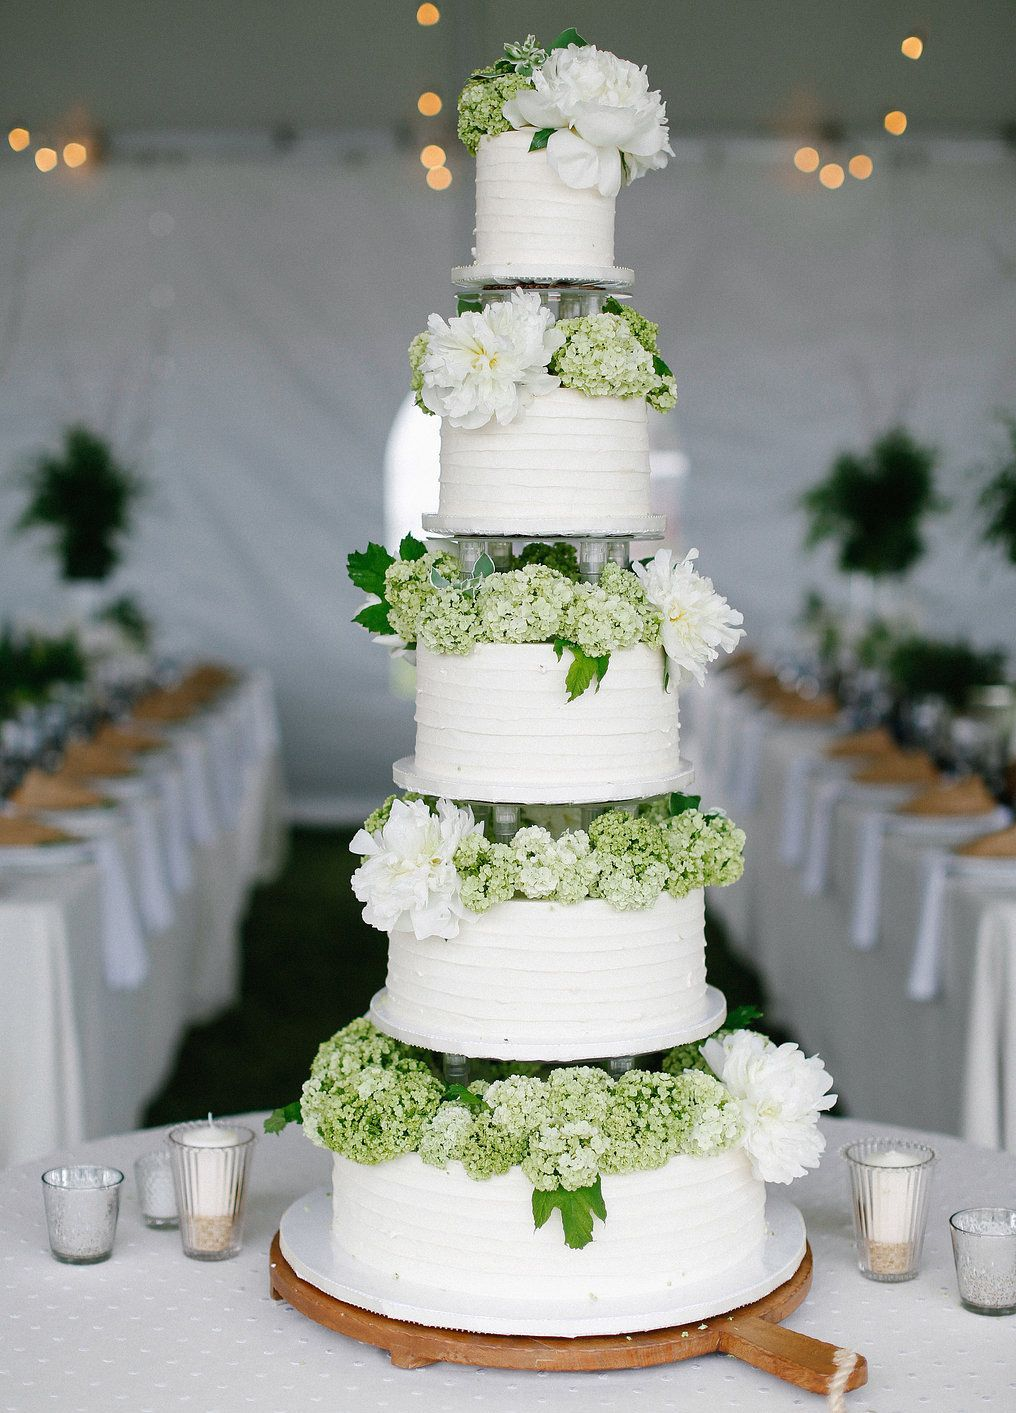 20 Ways To Decorate Your Wedding Cake With Fresh Flowers My Babies